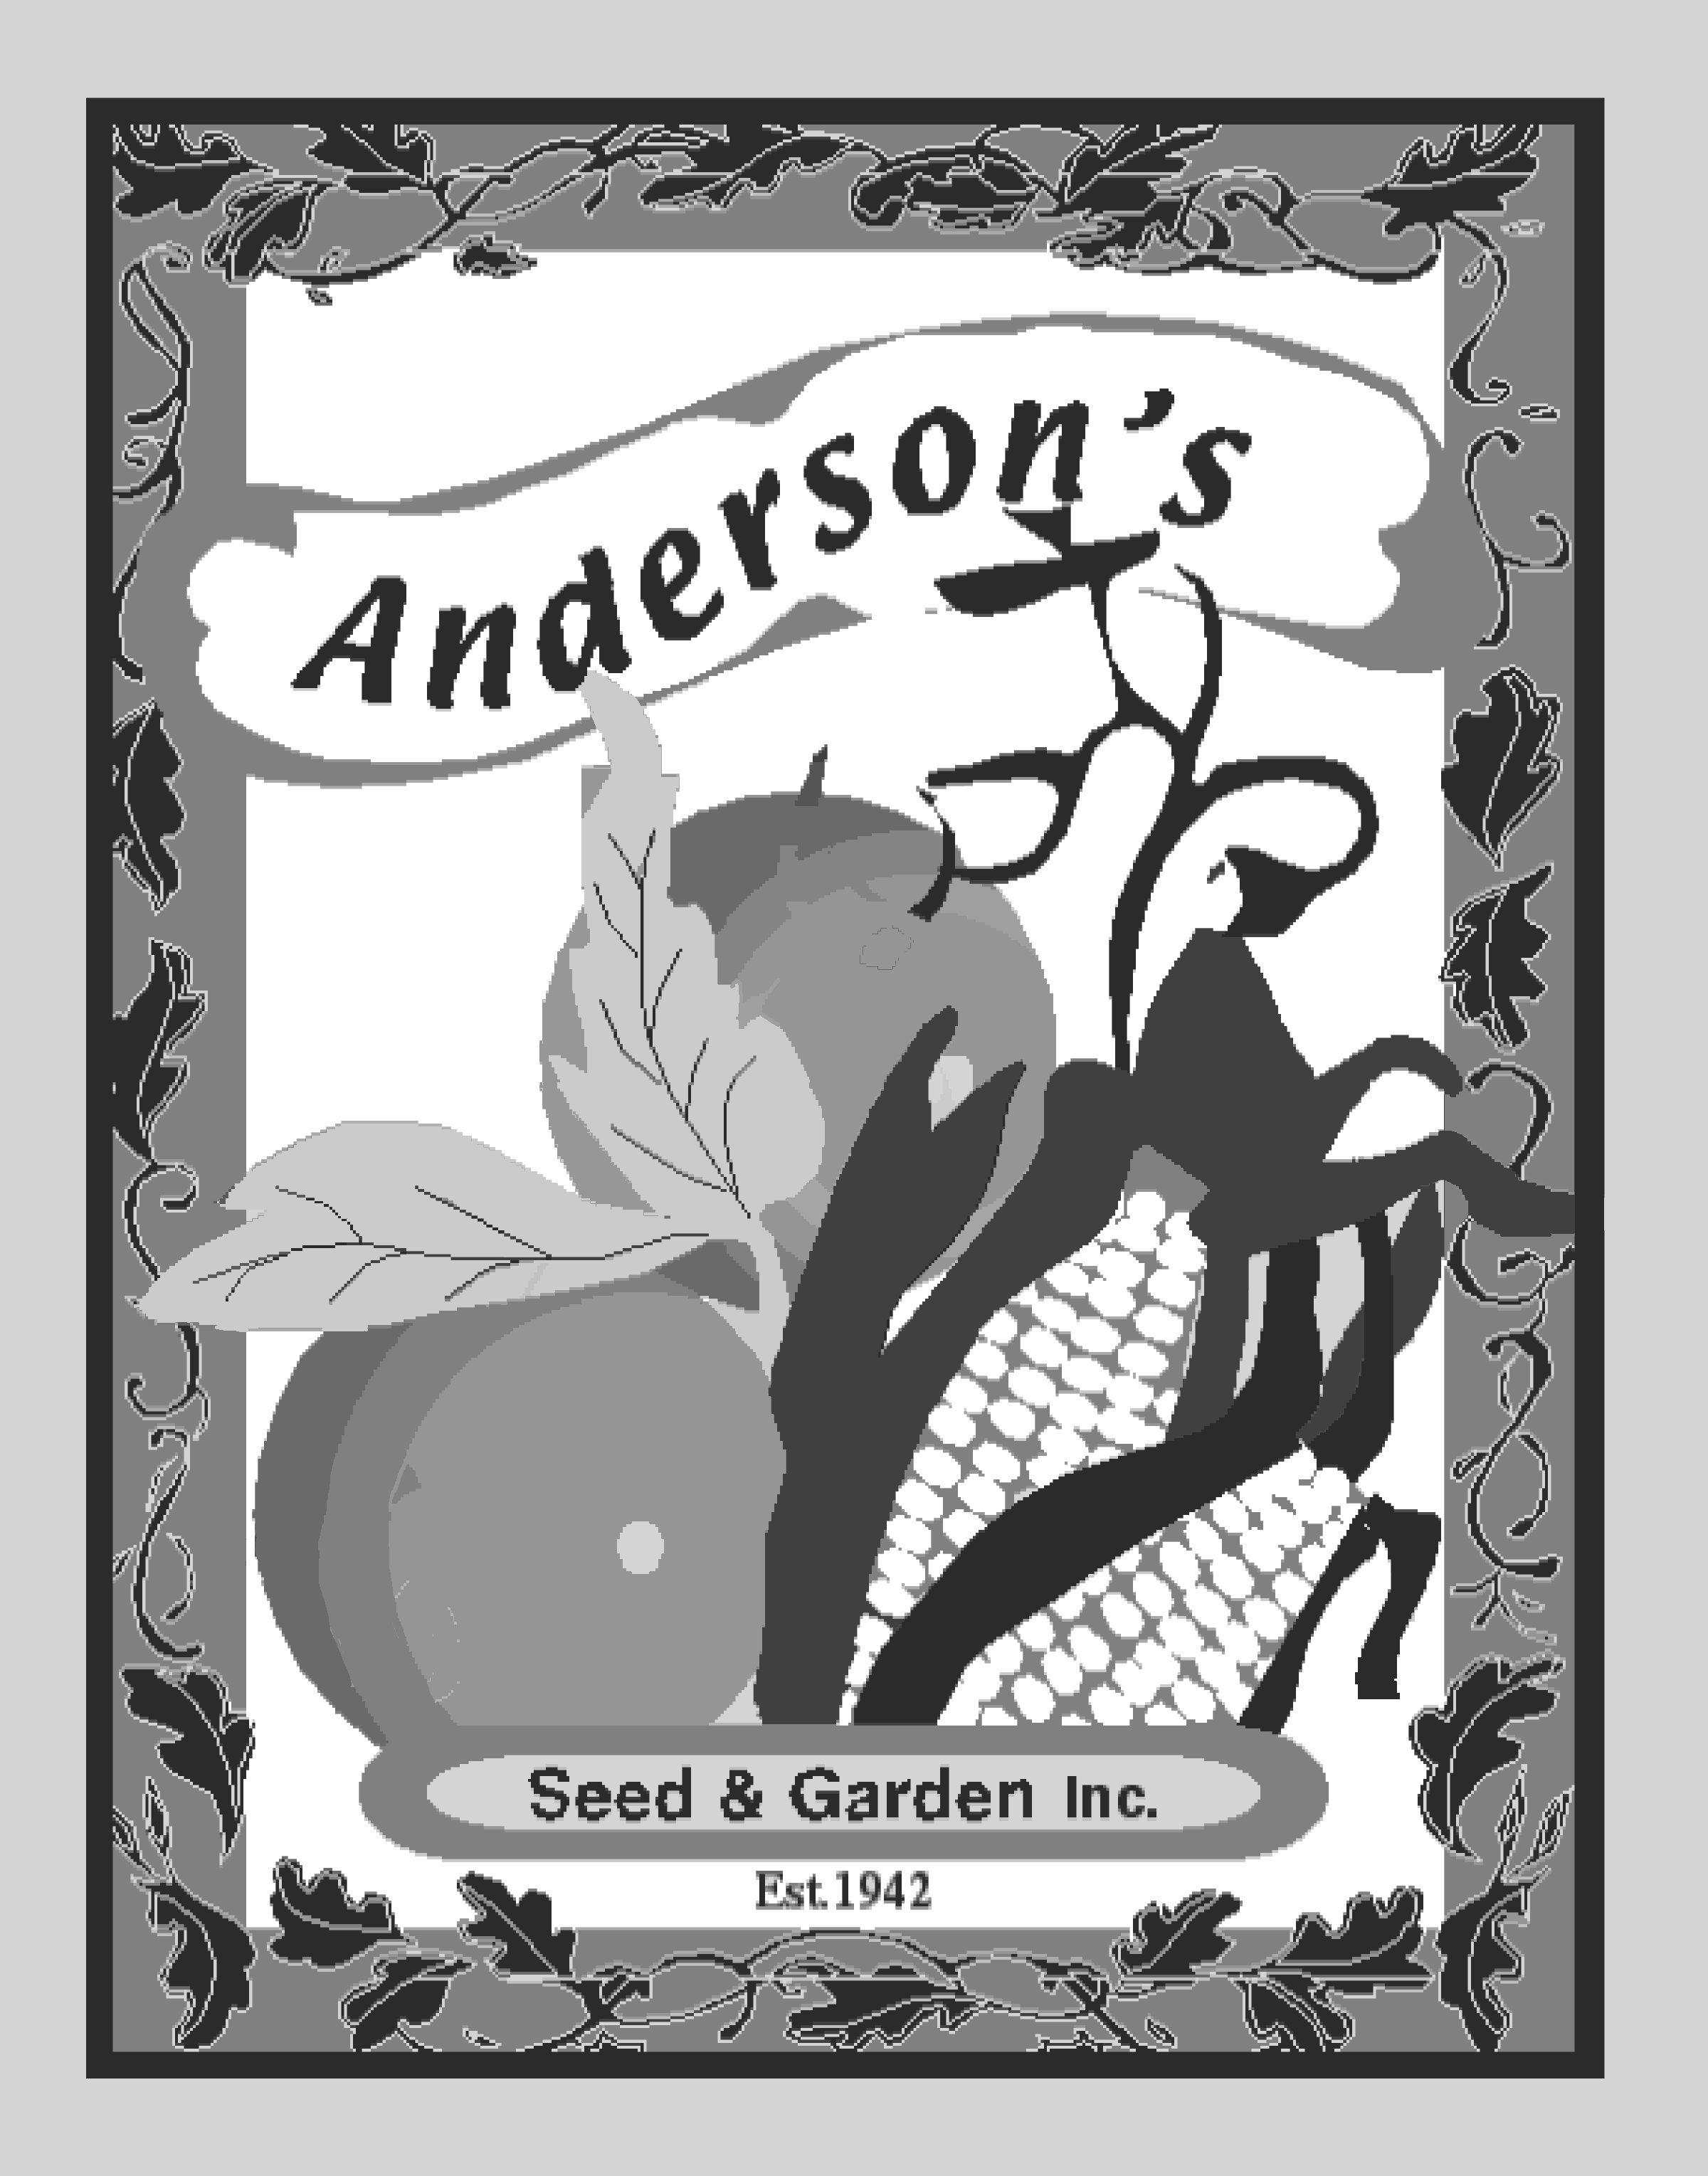 Moon & Stars Heirloom Watermelon Seed 1 oz.